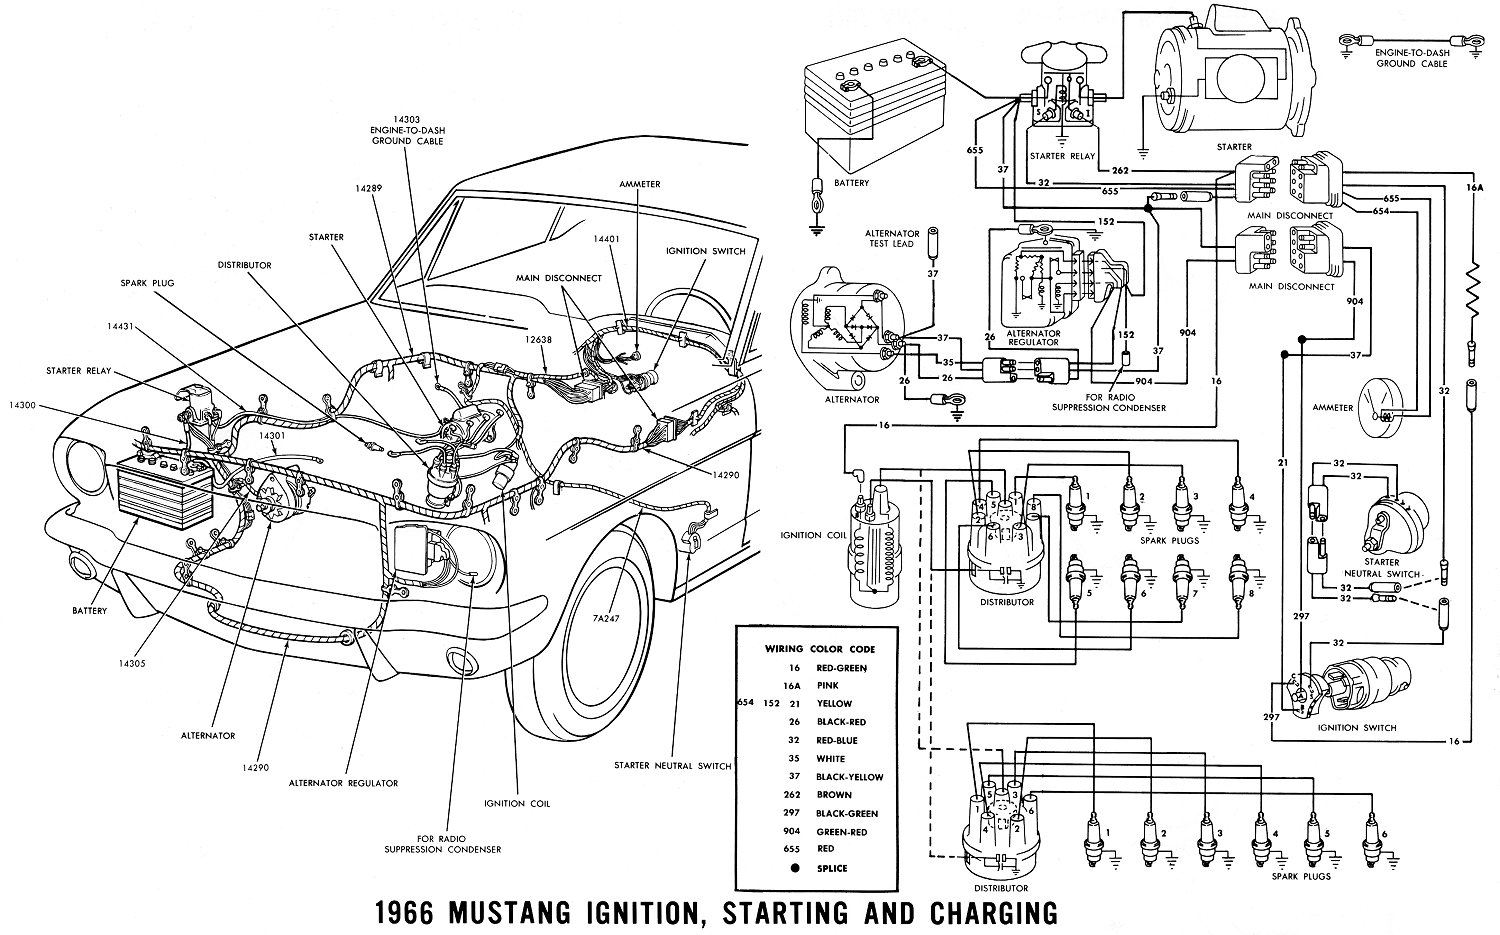 69 Mustang Wiring Diagram on 65 Ford F100 Wiring Diagram